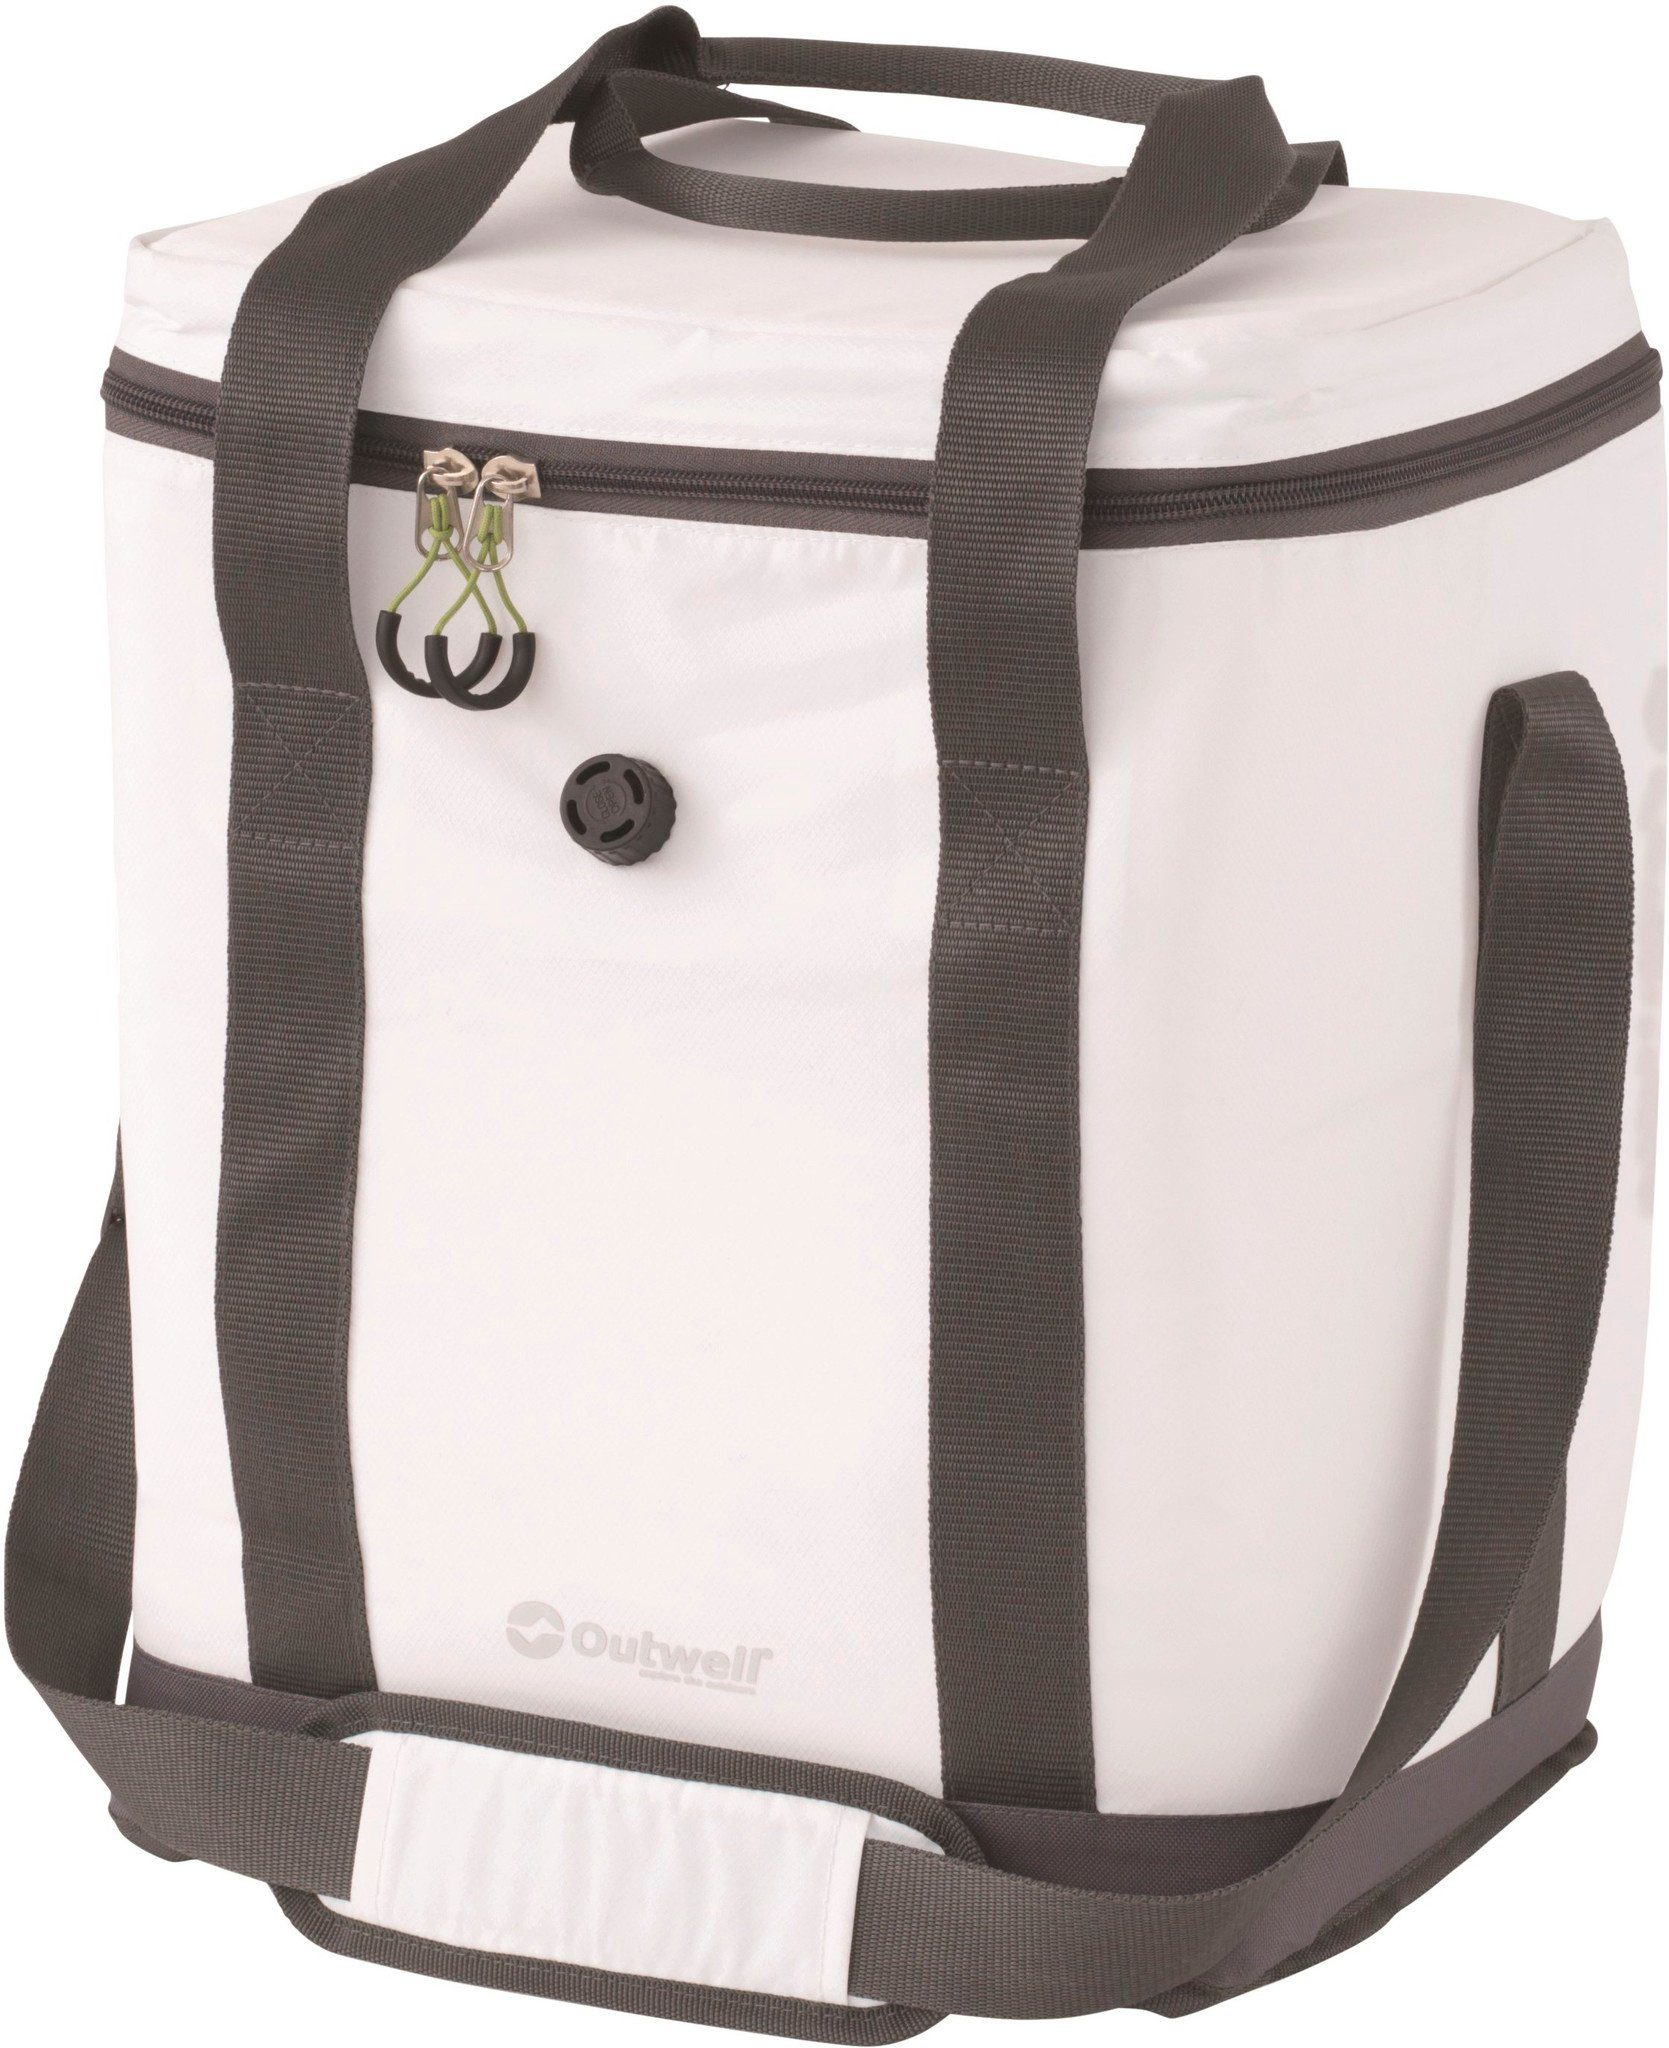 Outwell Campingkühlbox & -Tasche »Pelican Coolbag M«